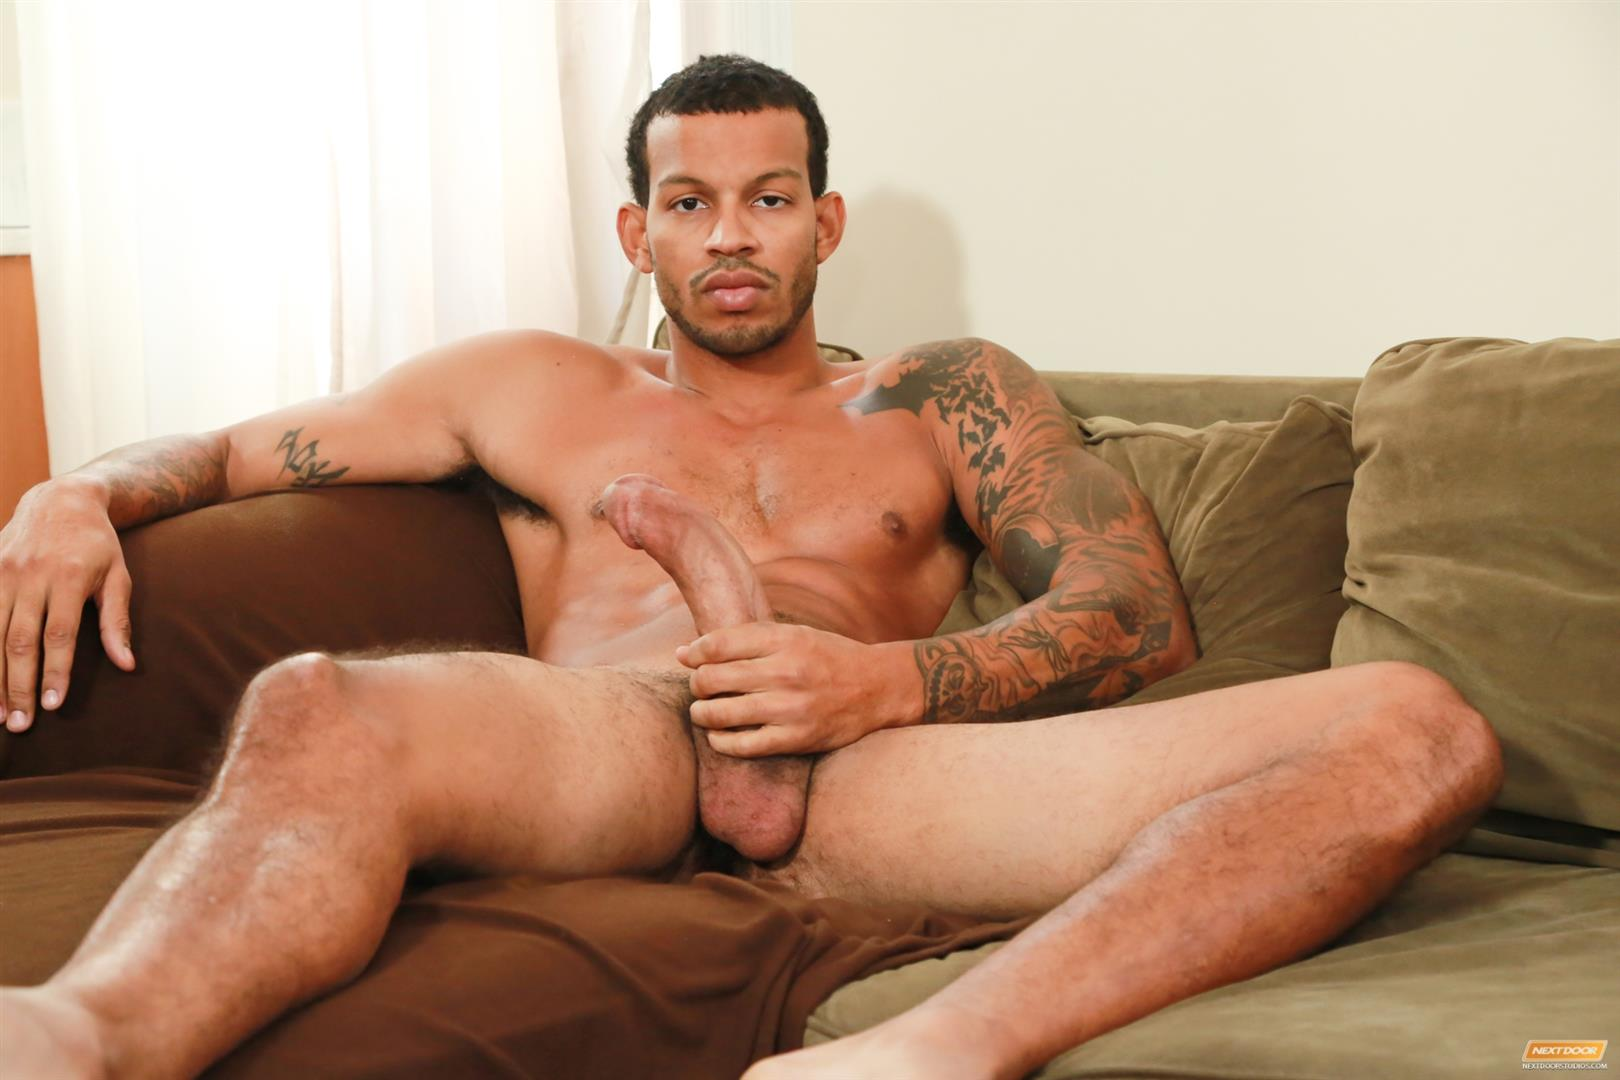 Ebony men jerking off